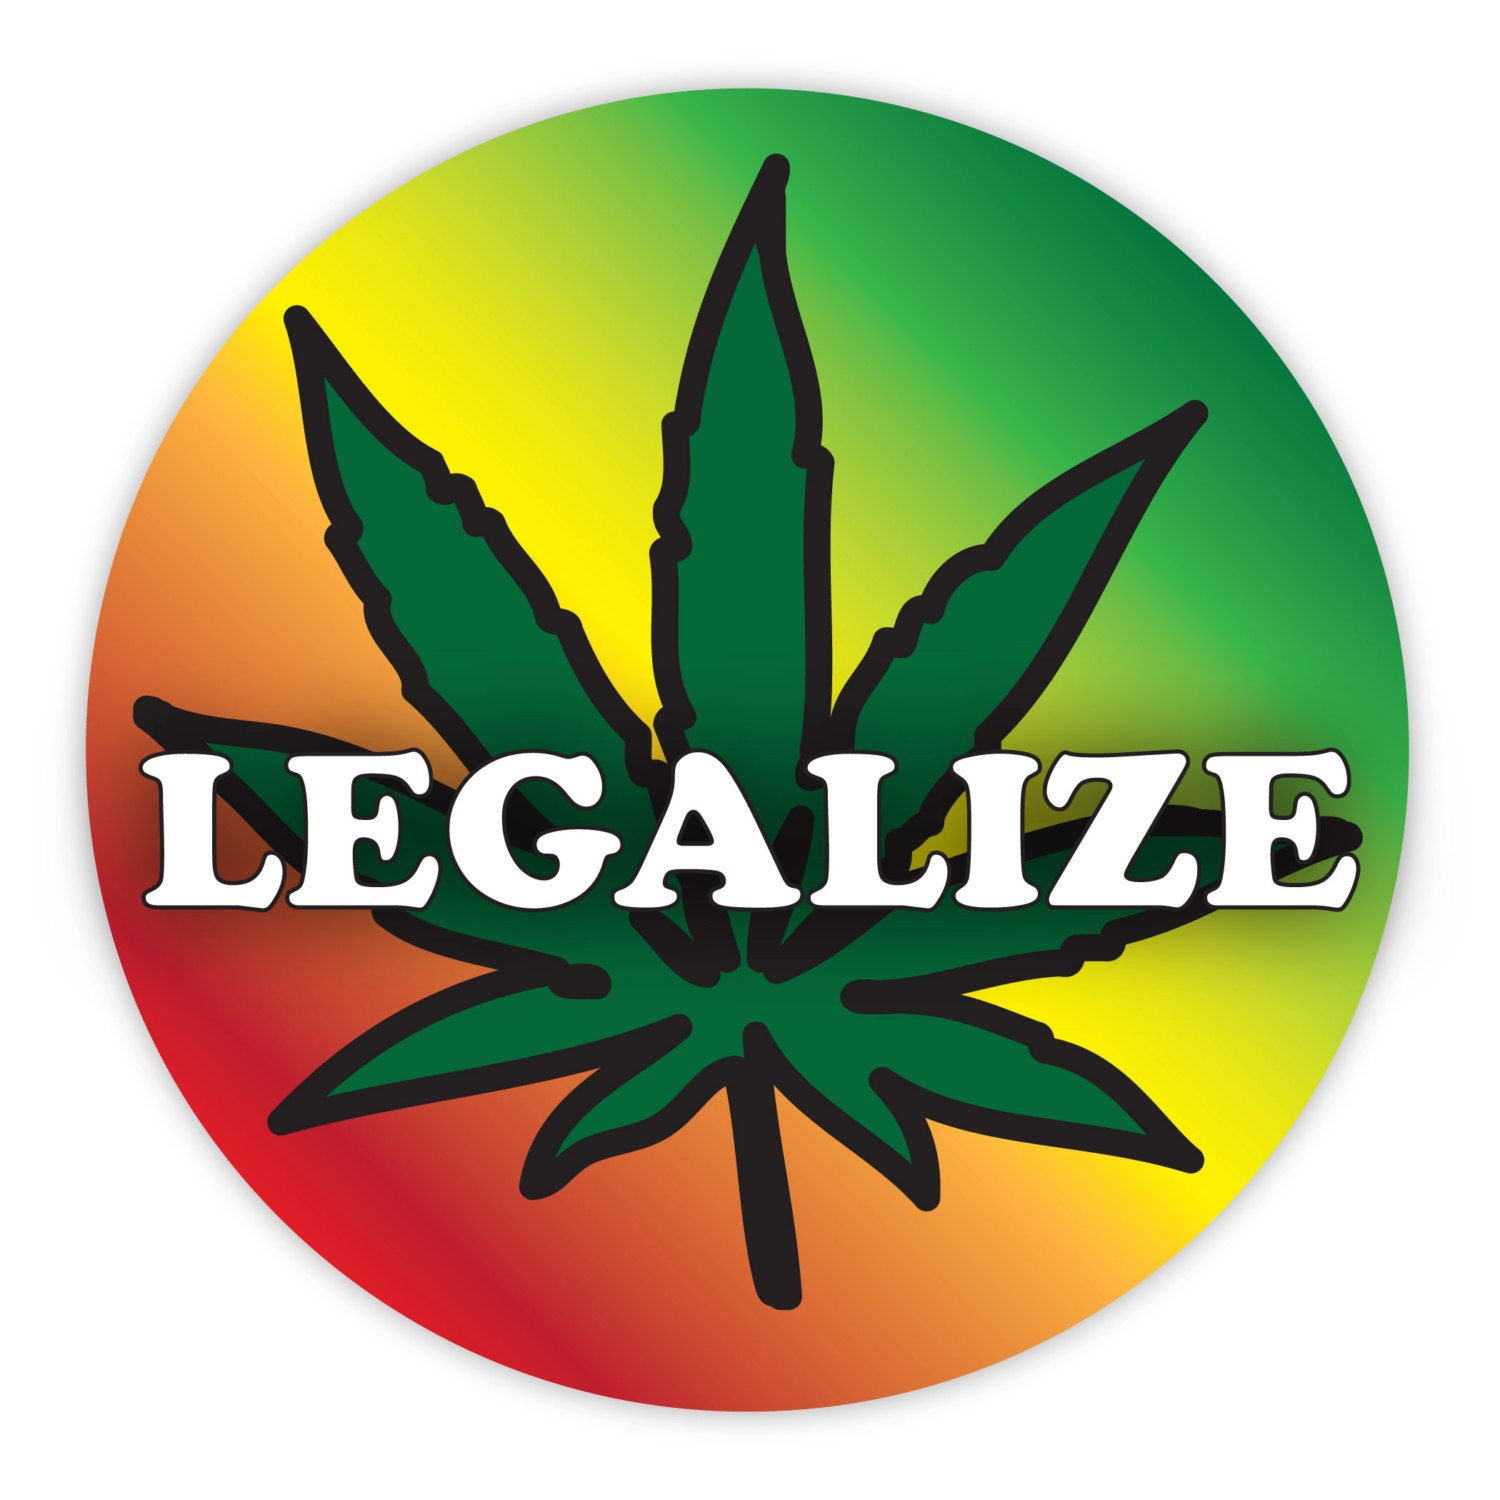 Legalize marijuana stickers legalize weed stickers etsy